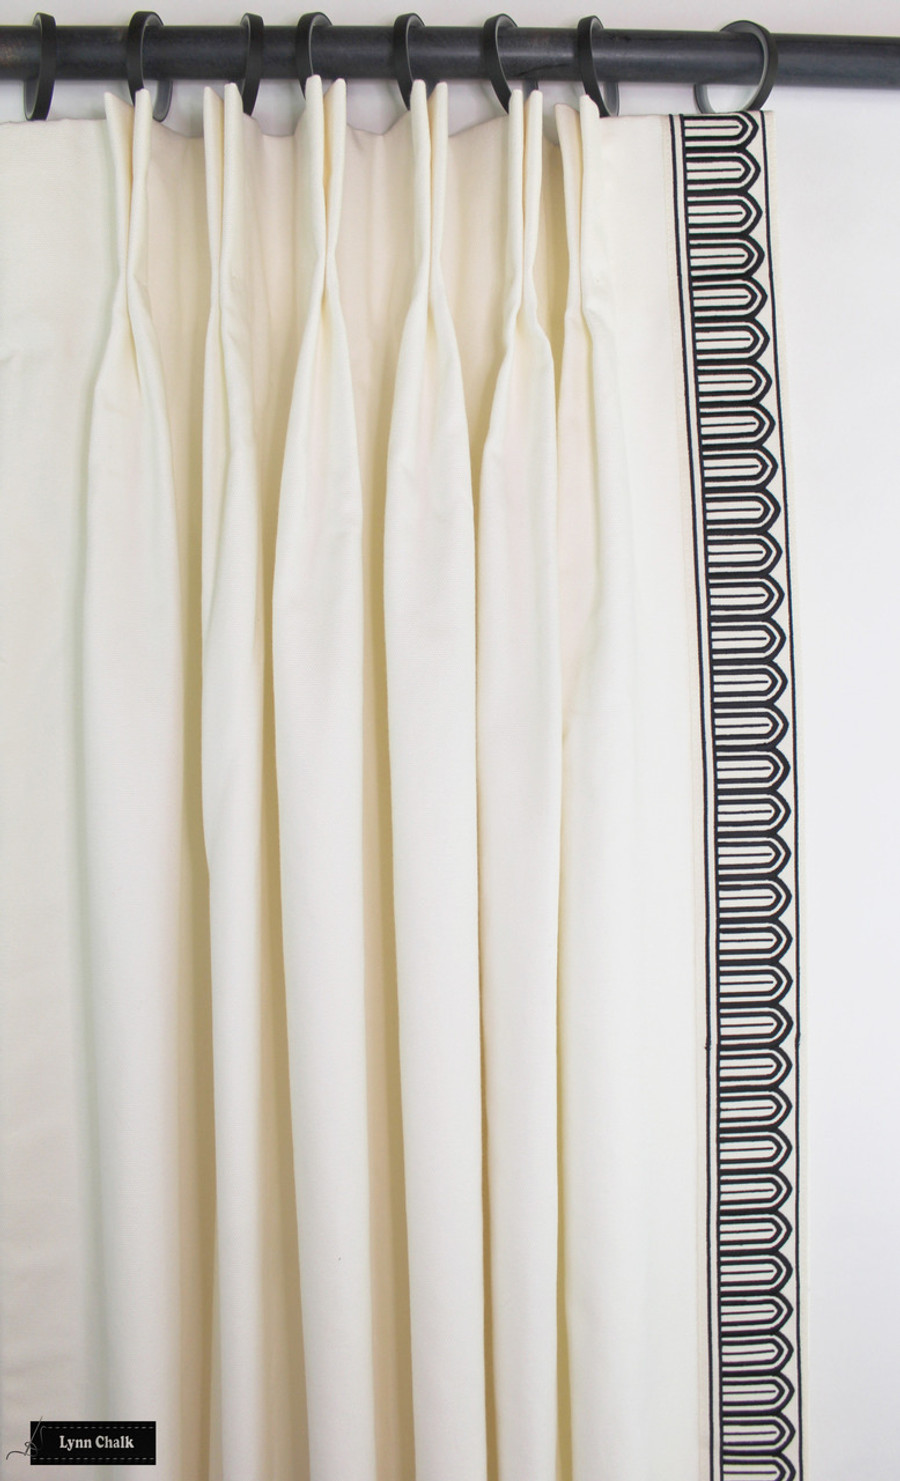 Custom Drapes in Schumacher Elliott in Cream 69492 with Schumacher Arches Trim Black on White 70760